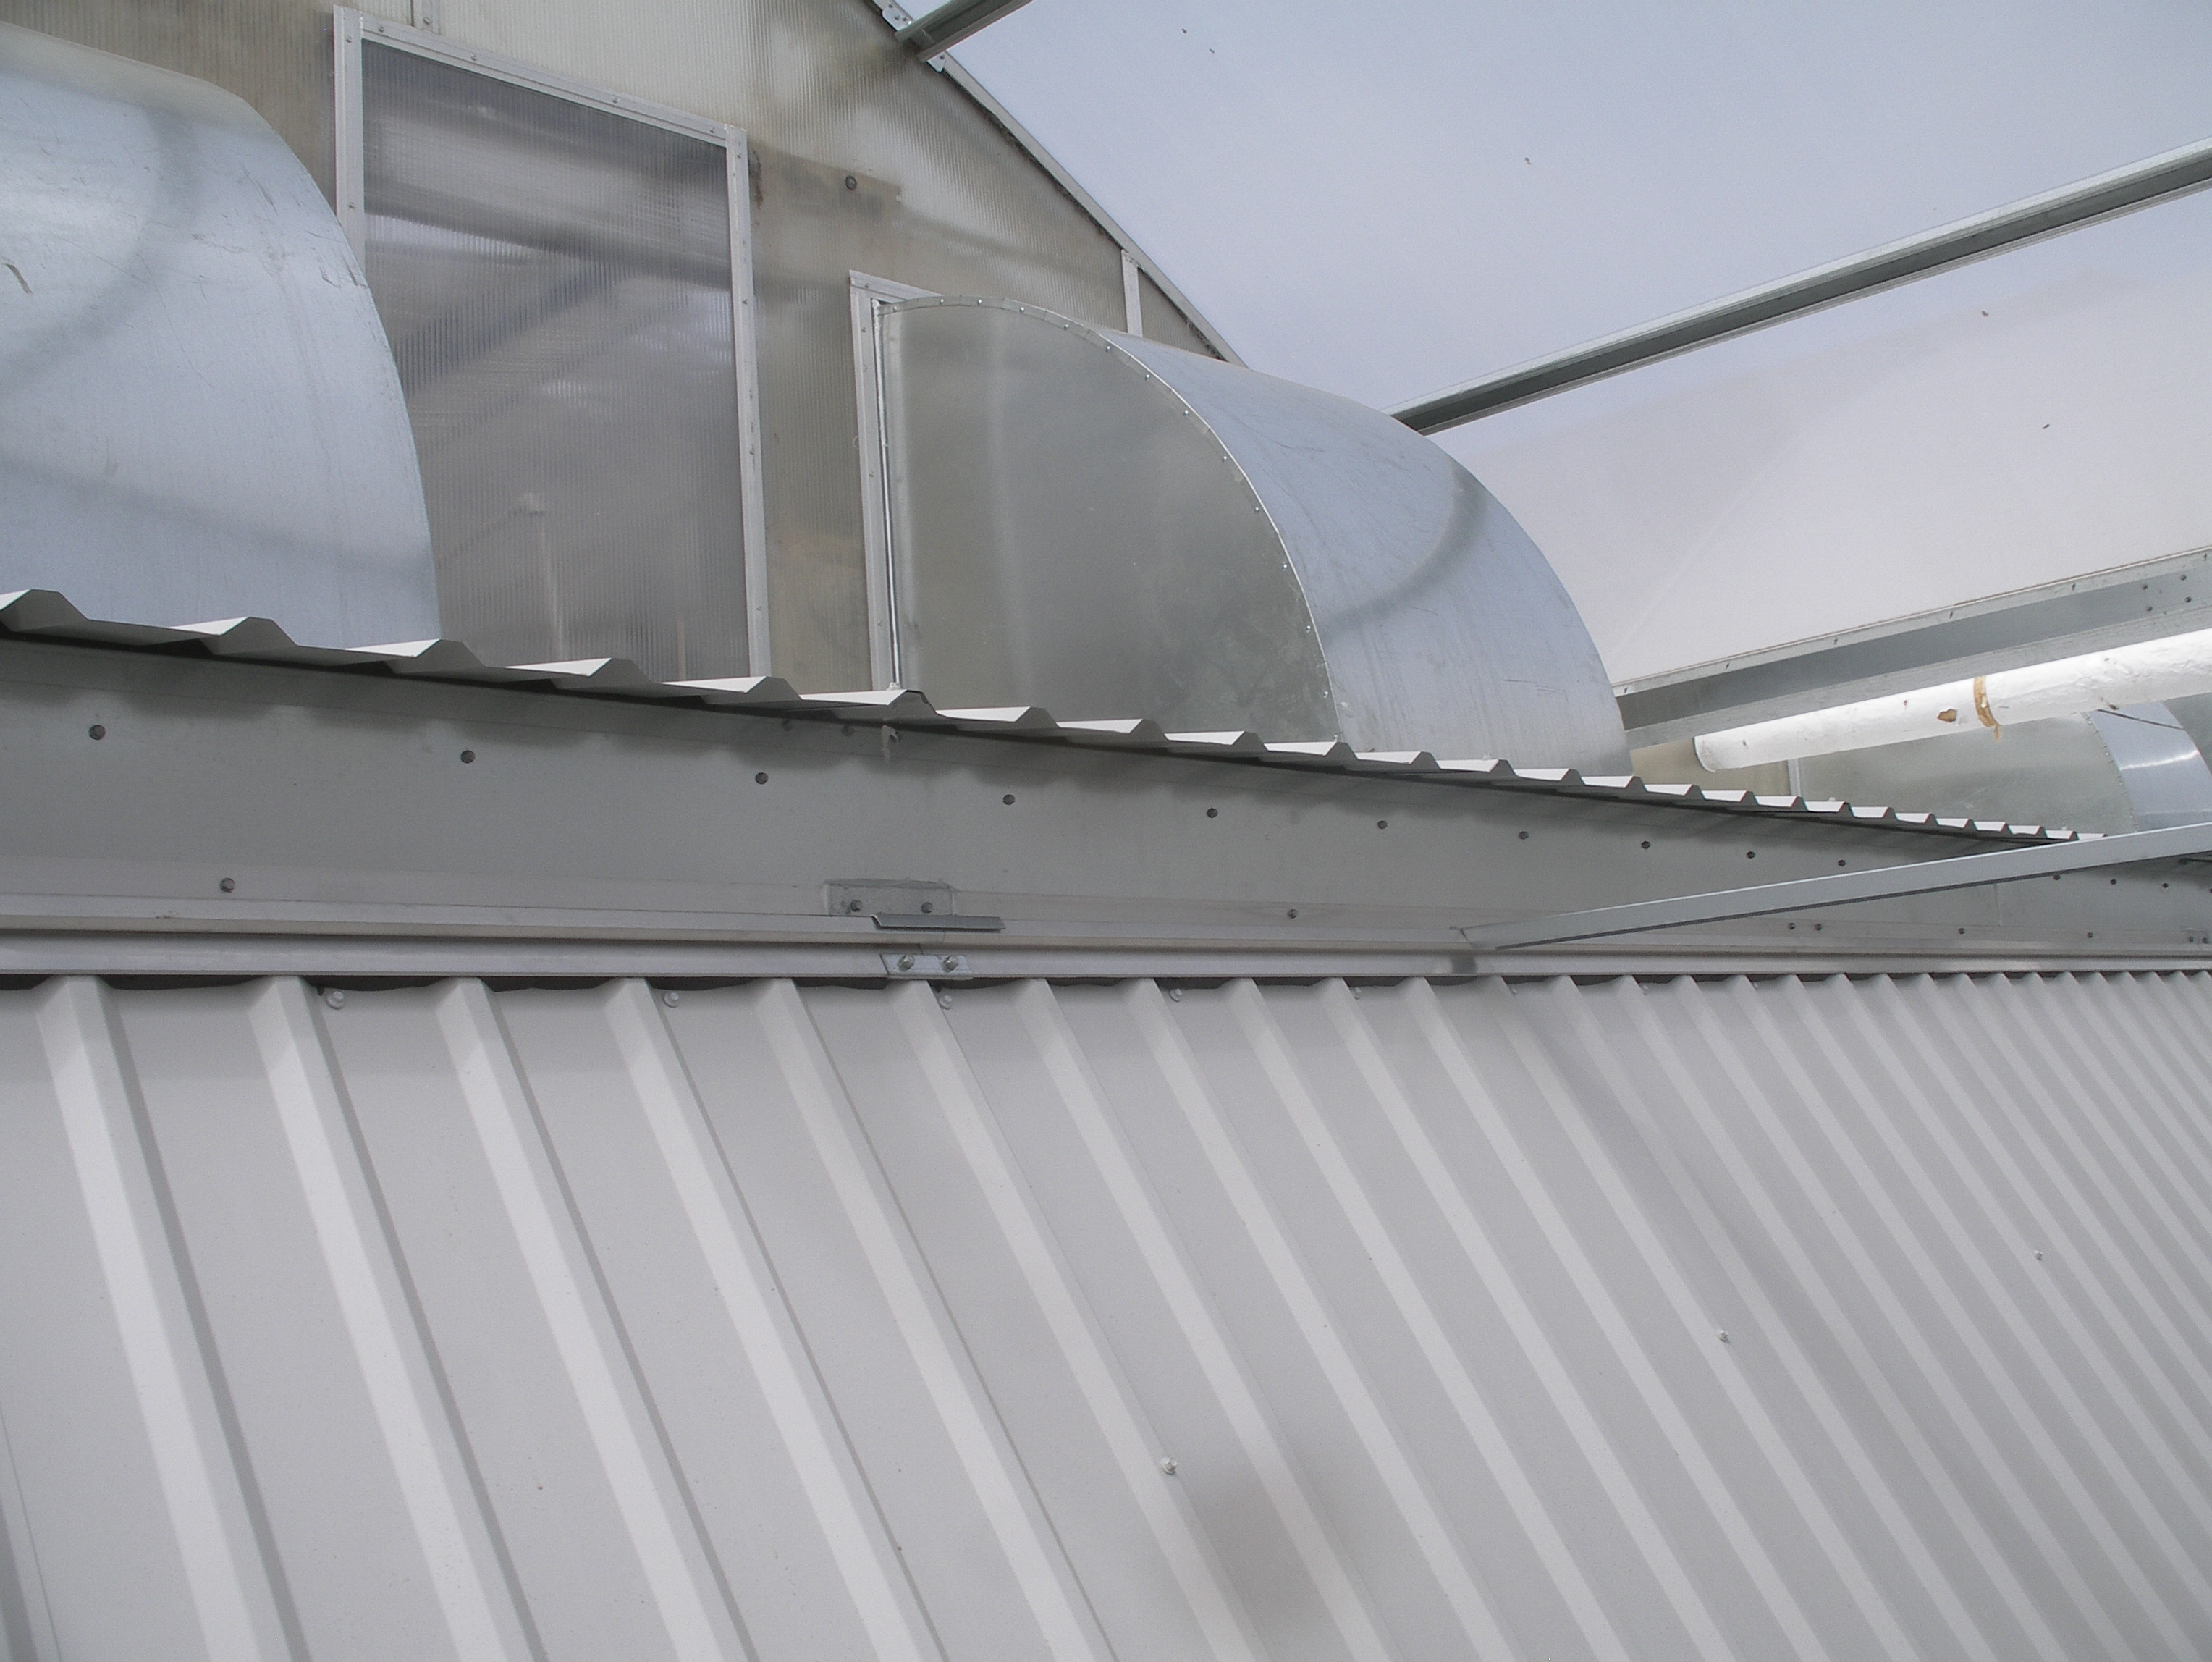 Positive Pressure Cooling | Cooling systems | Commercial Greenhouses Equipment